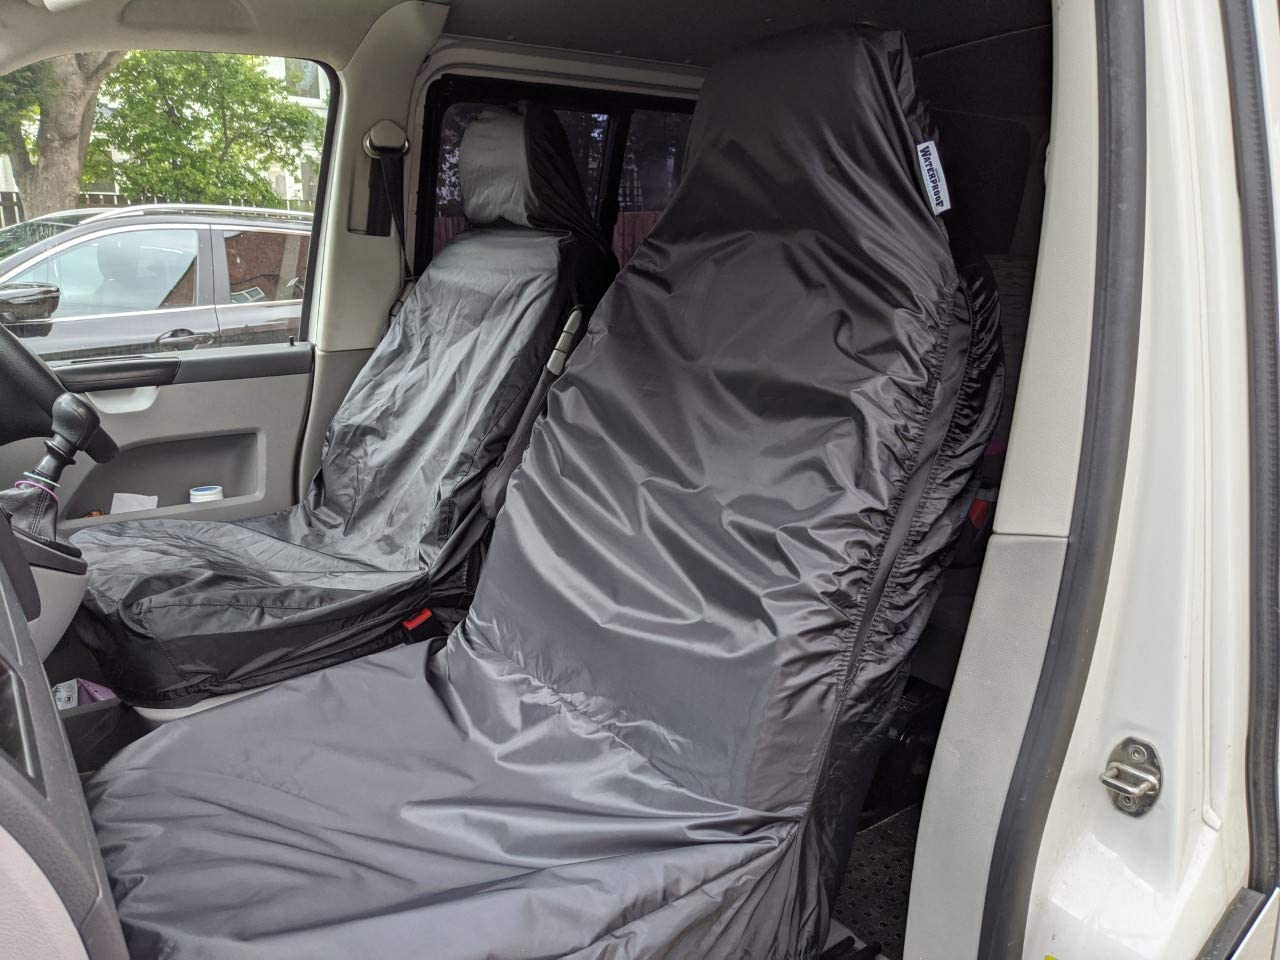 Waterproof Seat Cover Co Universal Fit Front Pair of Car Seat Covers AIRBAG COMPATIBLE BLACK